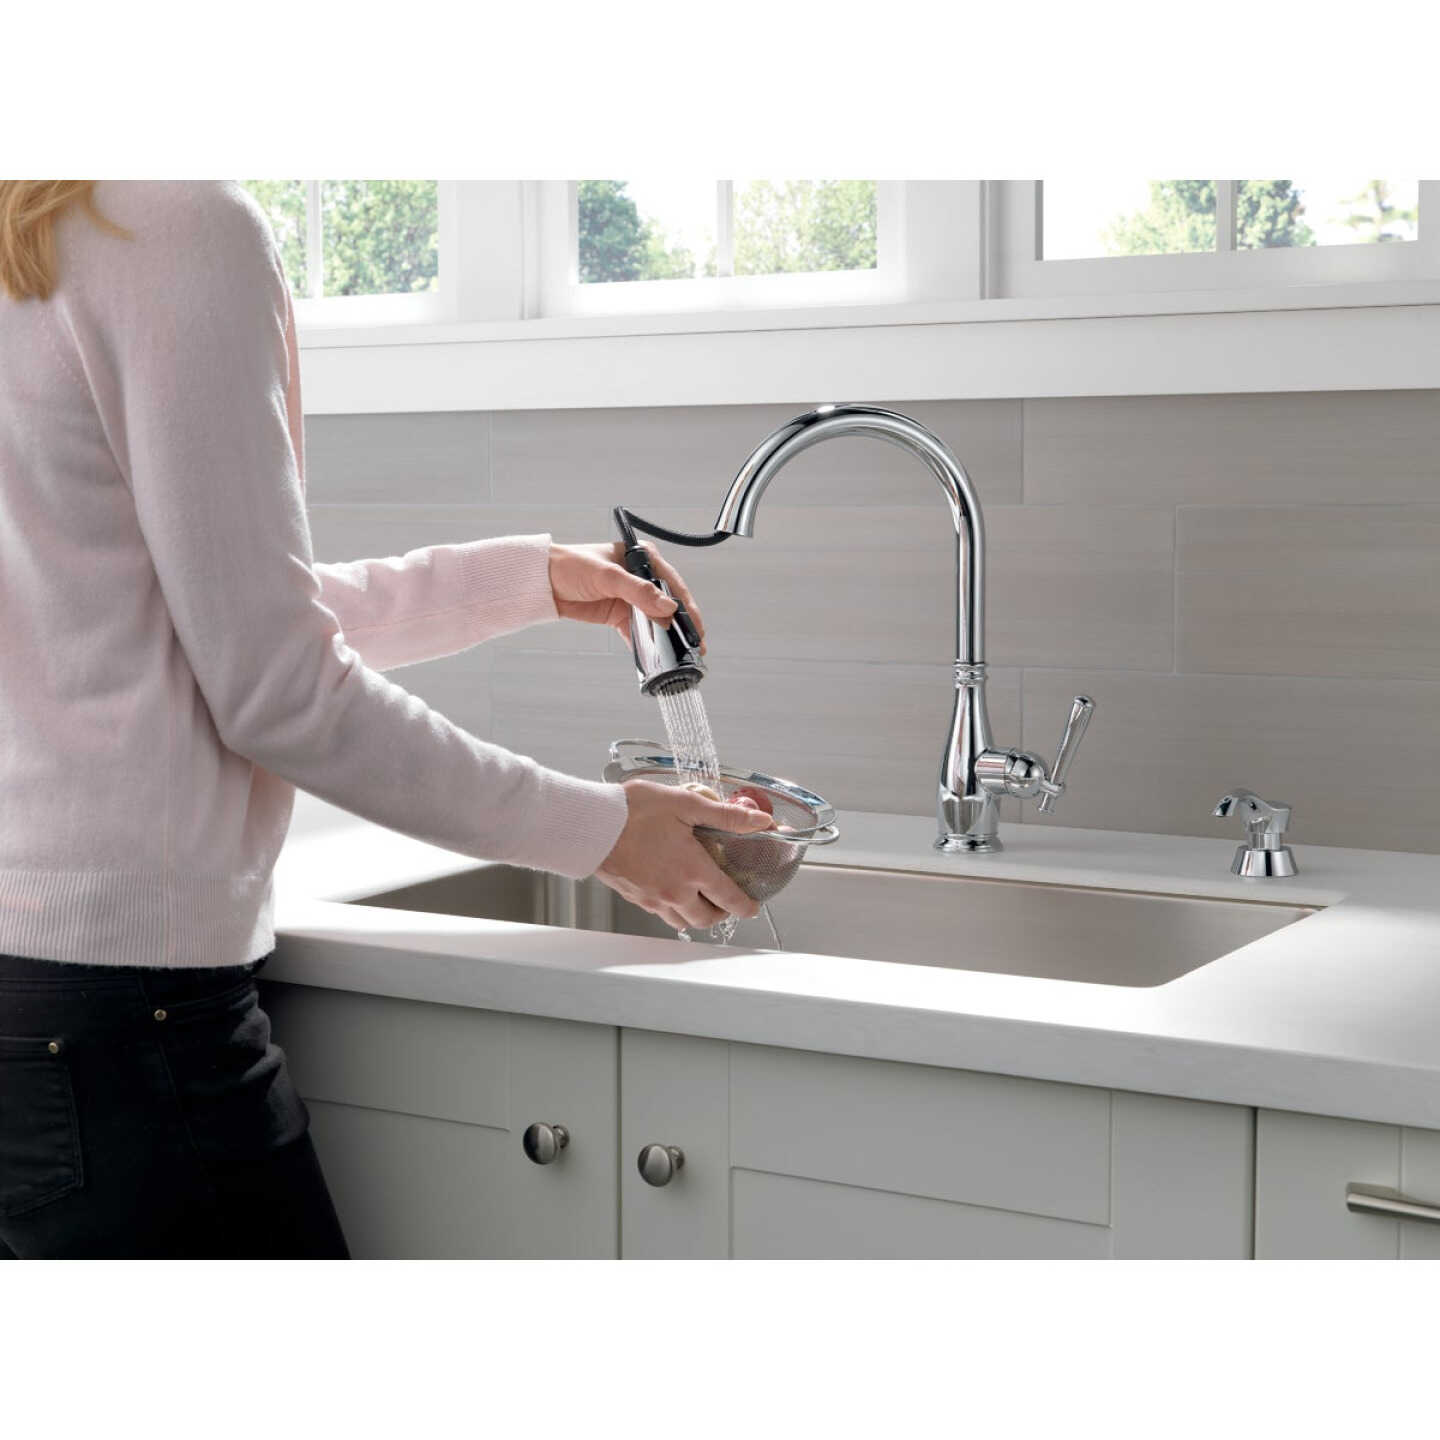 Delta Charmaine Chrome Single Handle Pull-Down Kitchen Faucet with Soap Dispenser Image 2